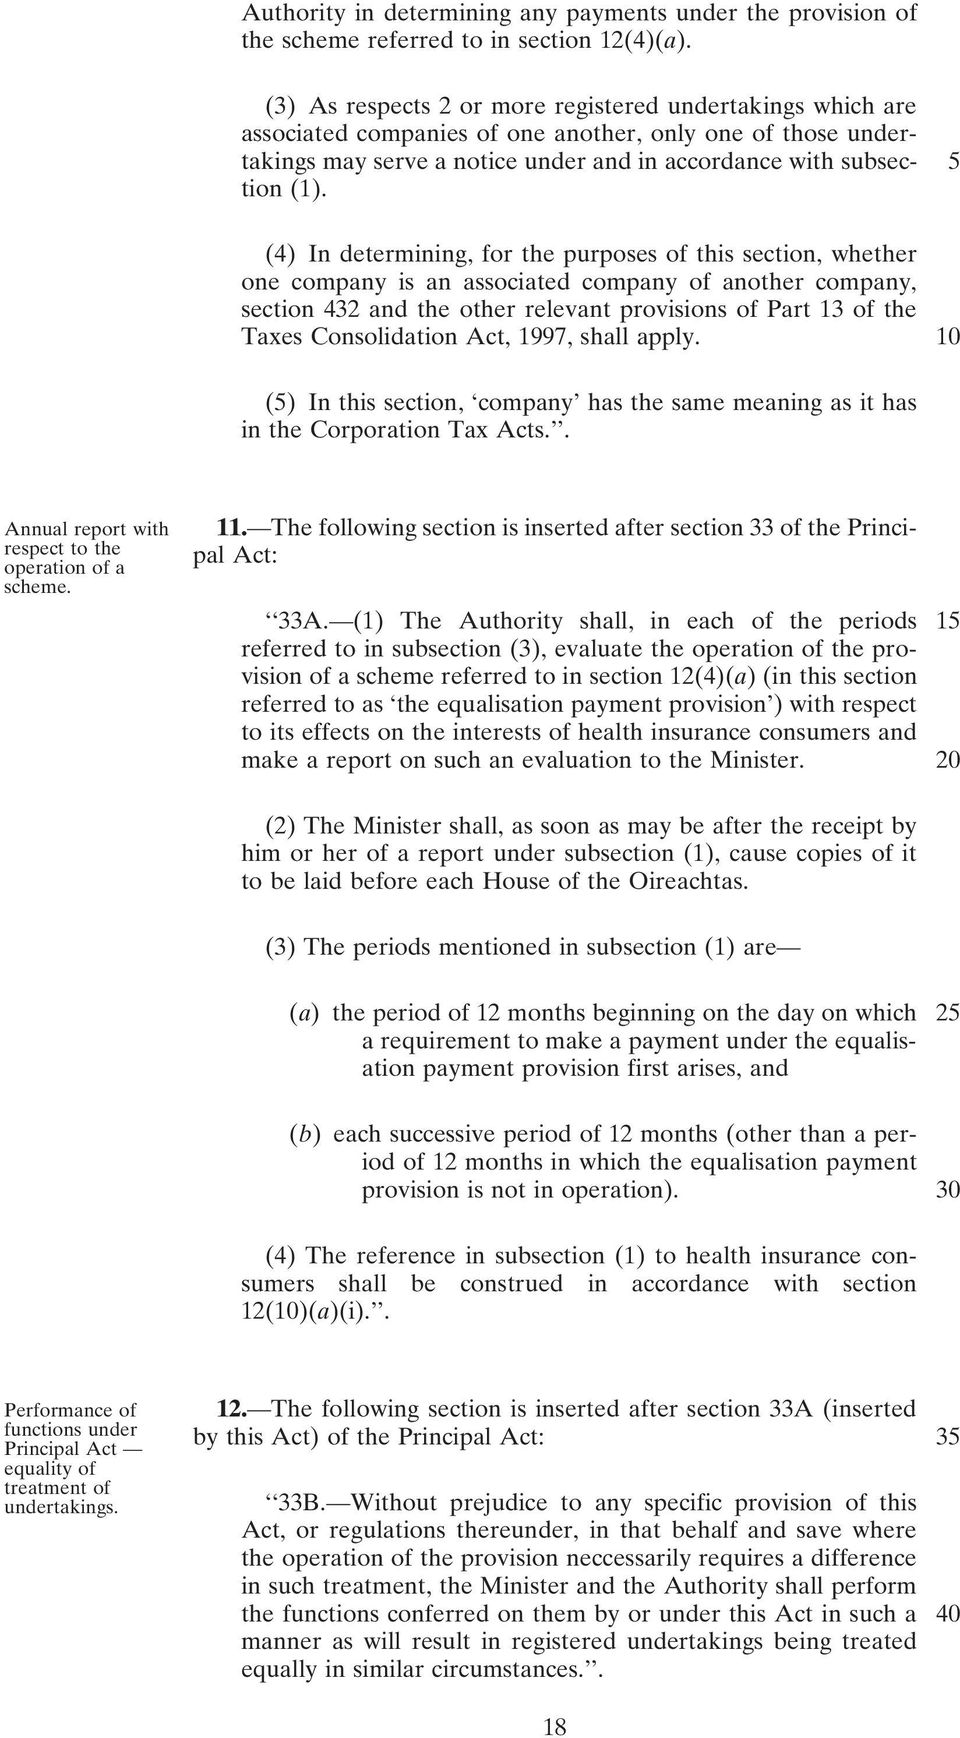 (4) In determining, for the purposes of this section, whether one company is an associated company of another company, section 432 and the other relevant provisions of Part 13 of the Taxes